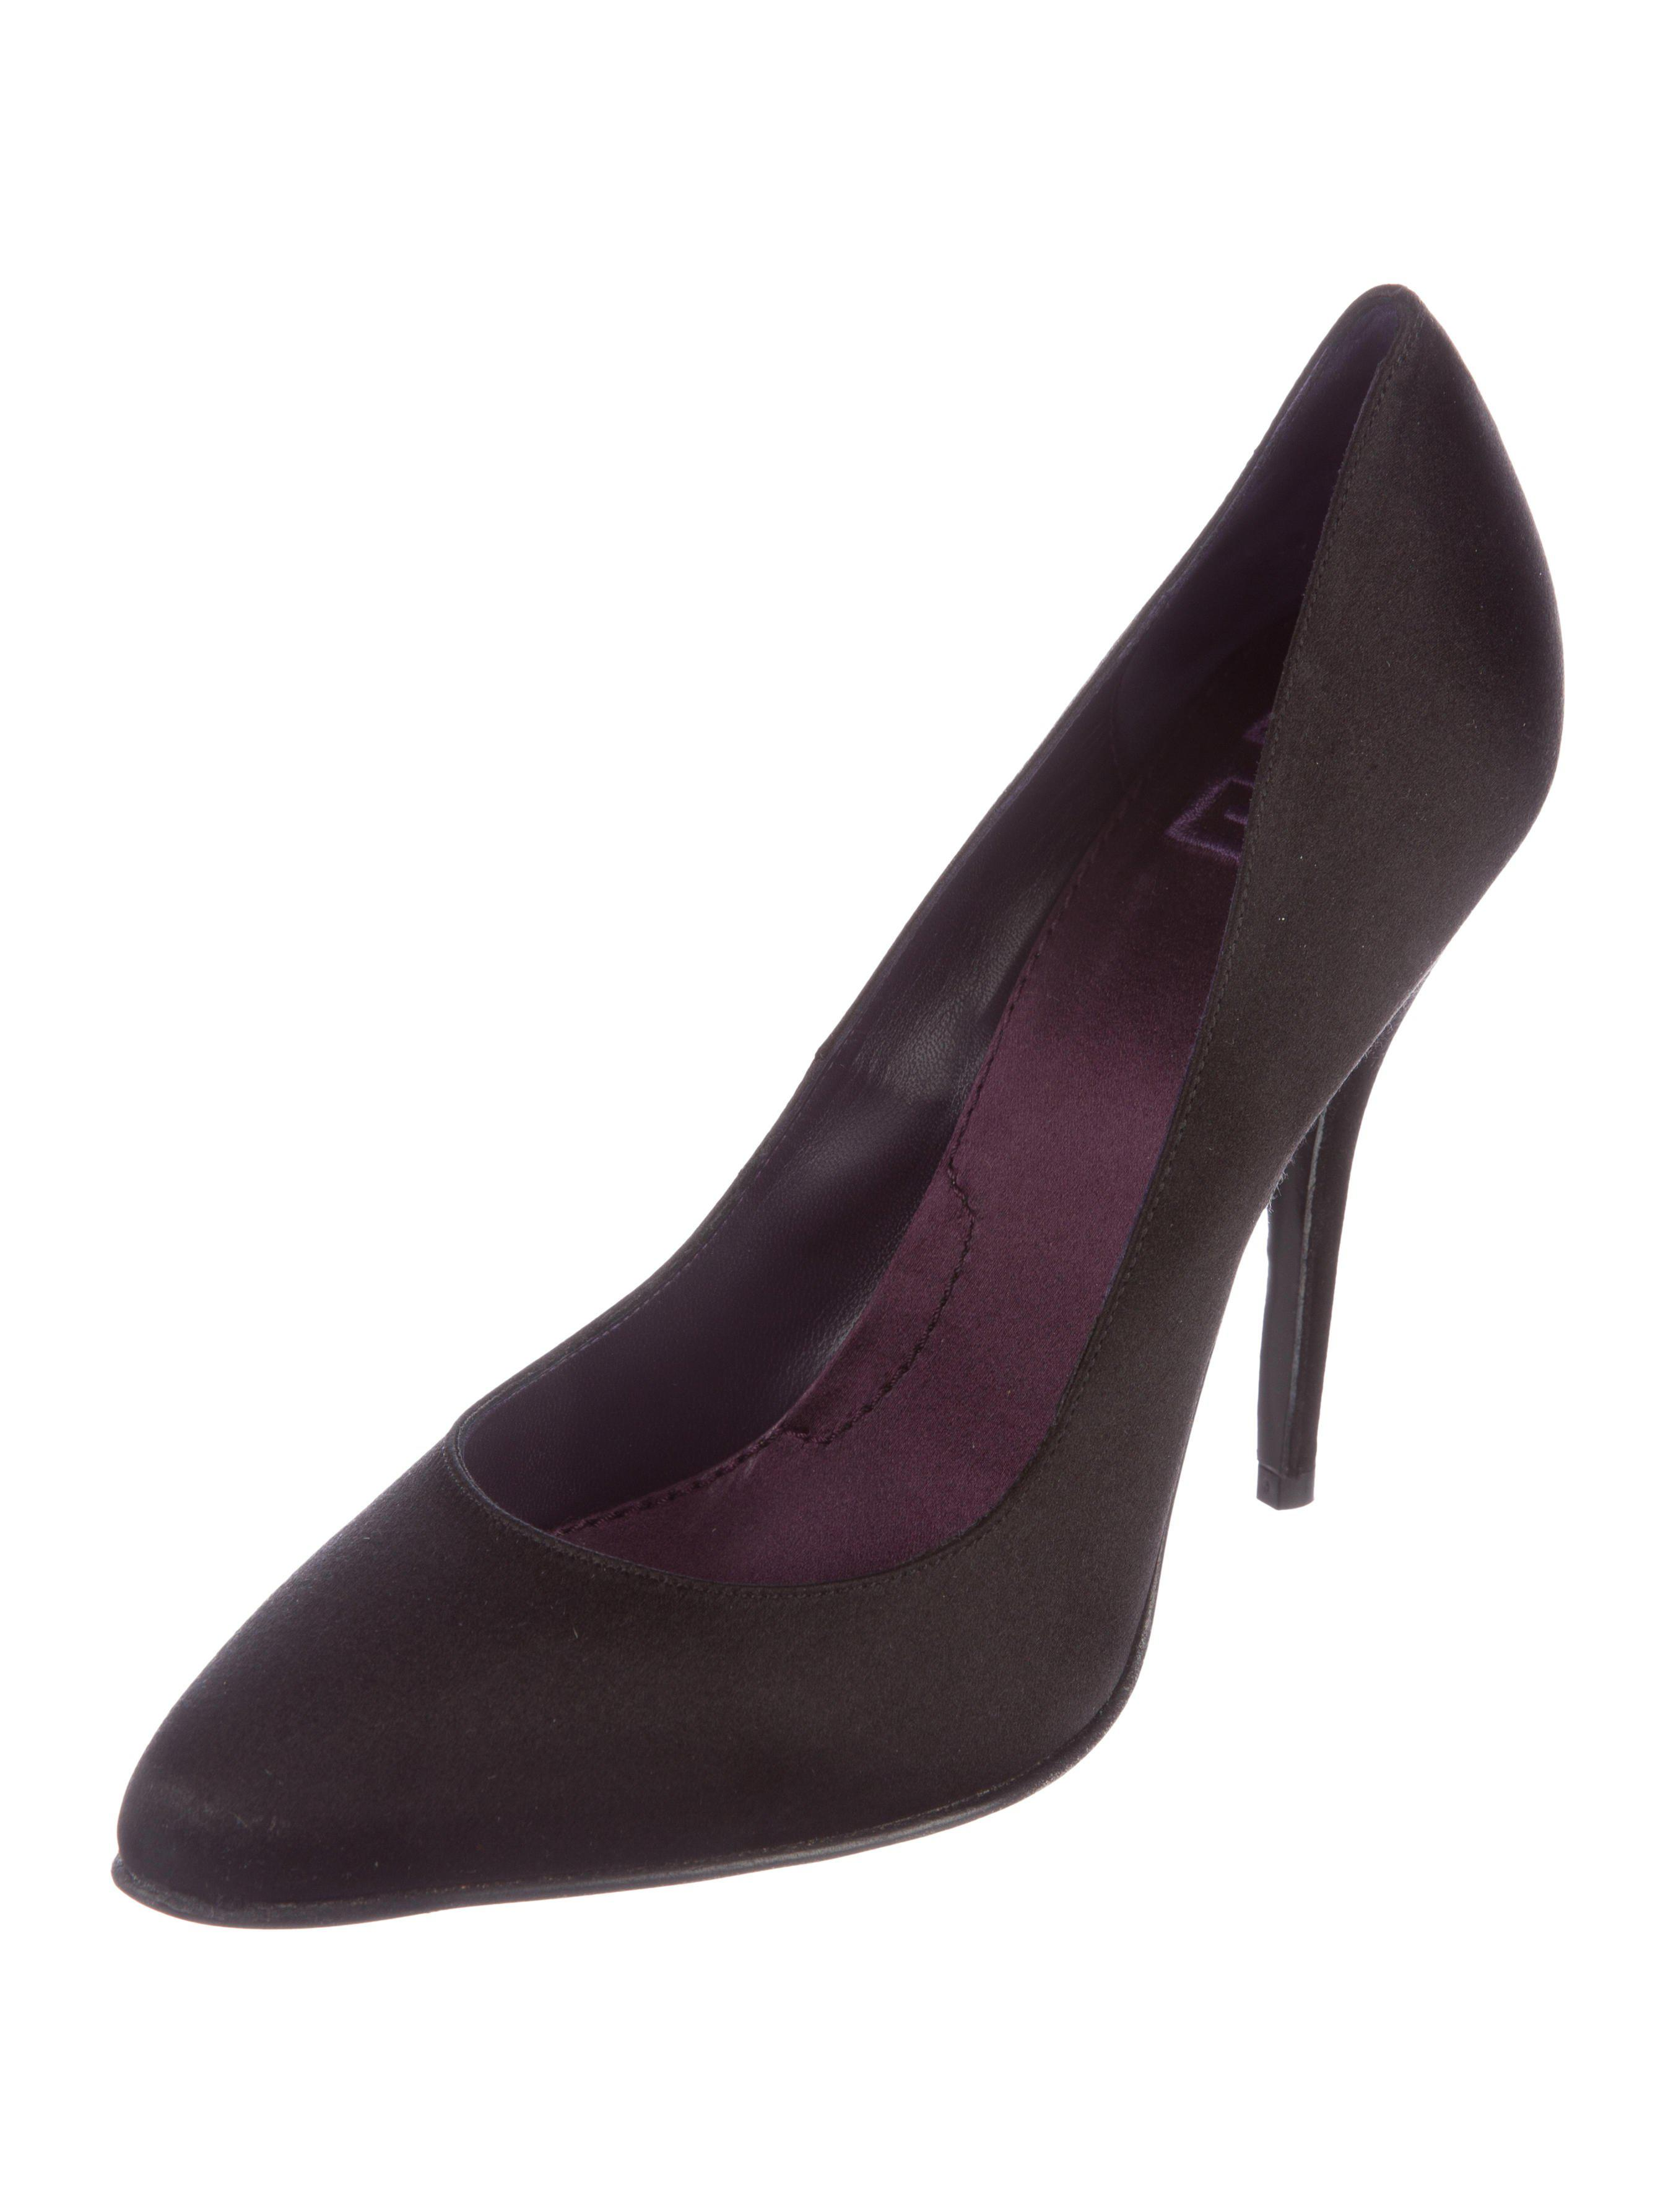 Givenchy Satin Round-Toe Pumps pay with visa sale online CmyX083